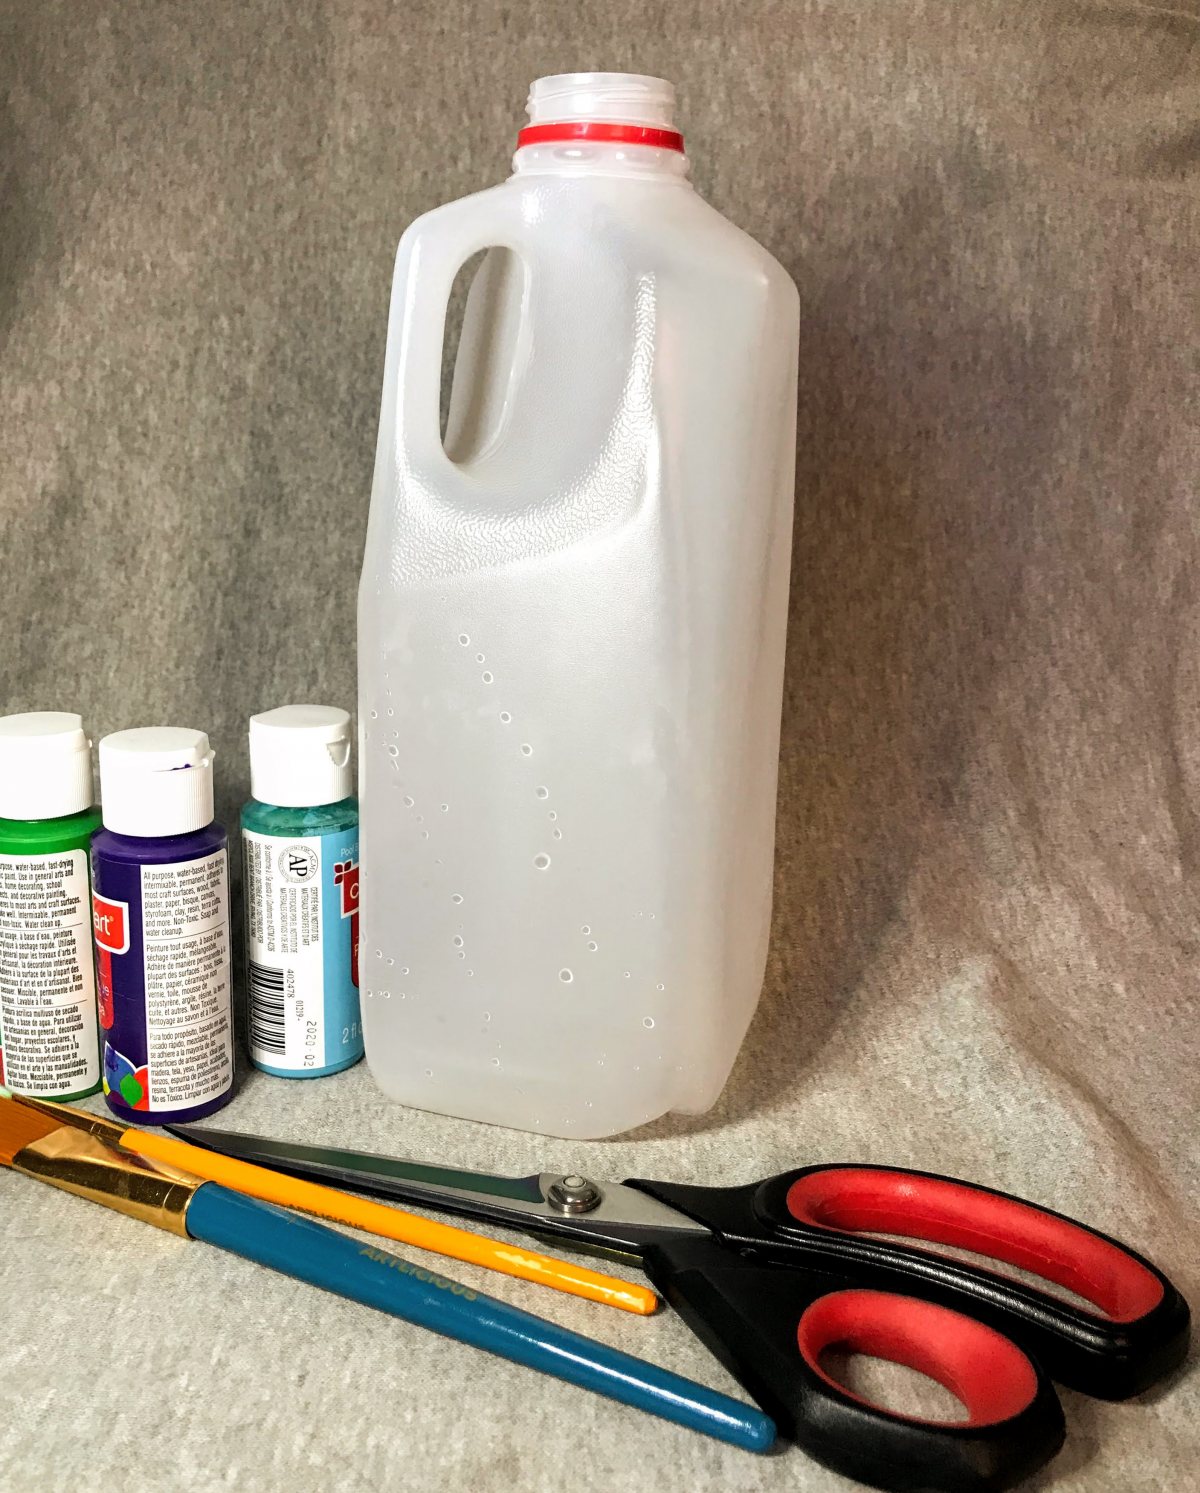 A grouping of supplies: milk jug, paint, and scissors